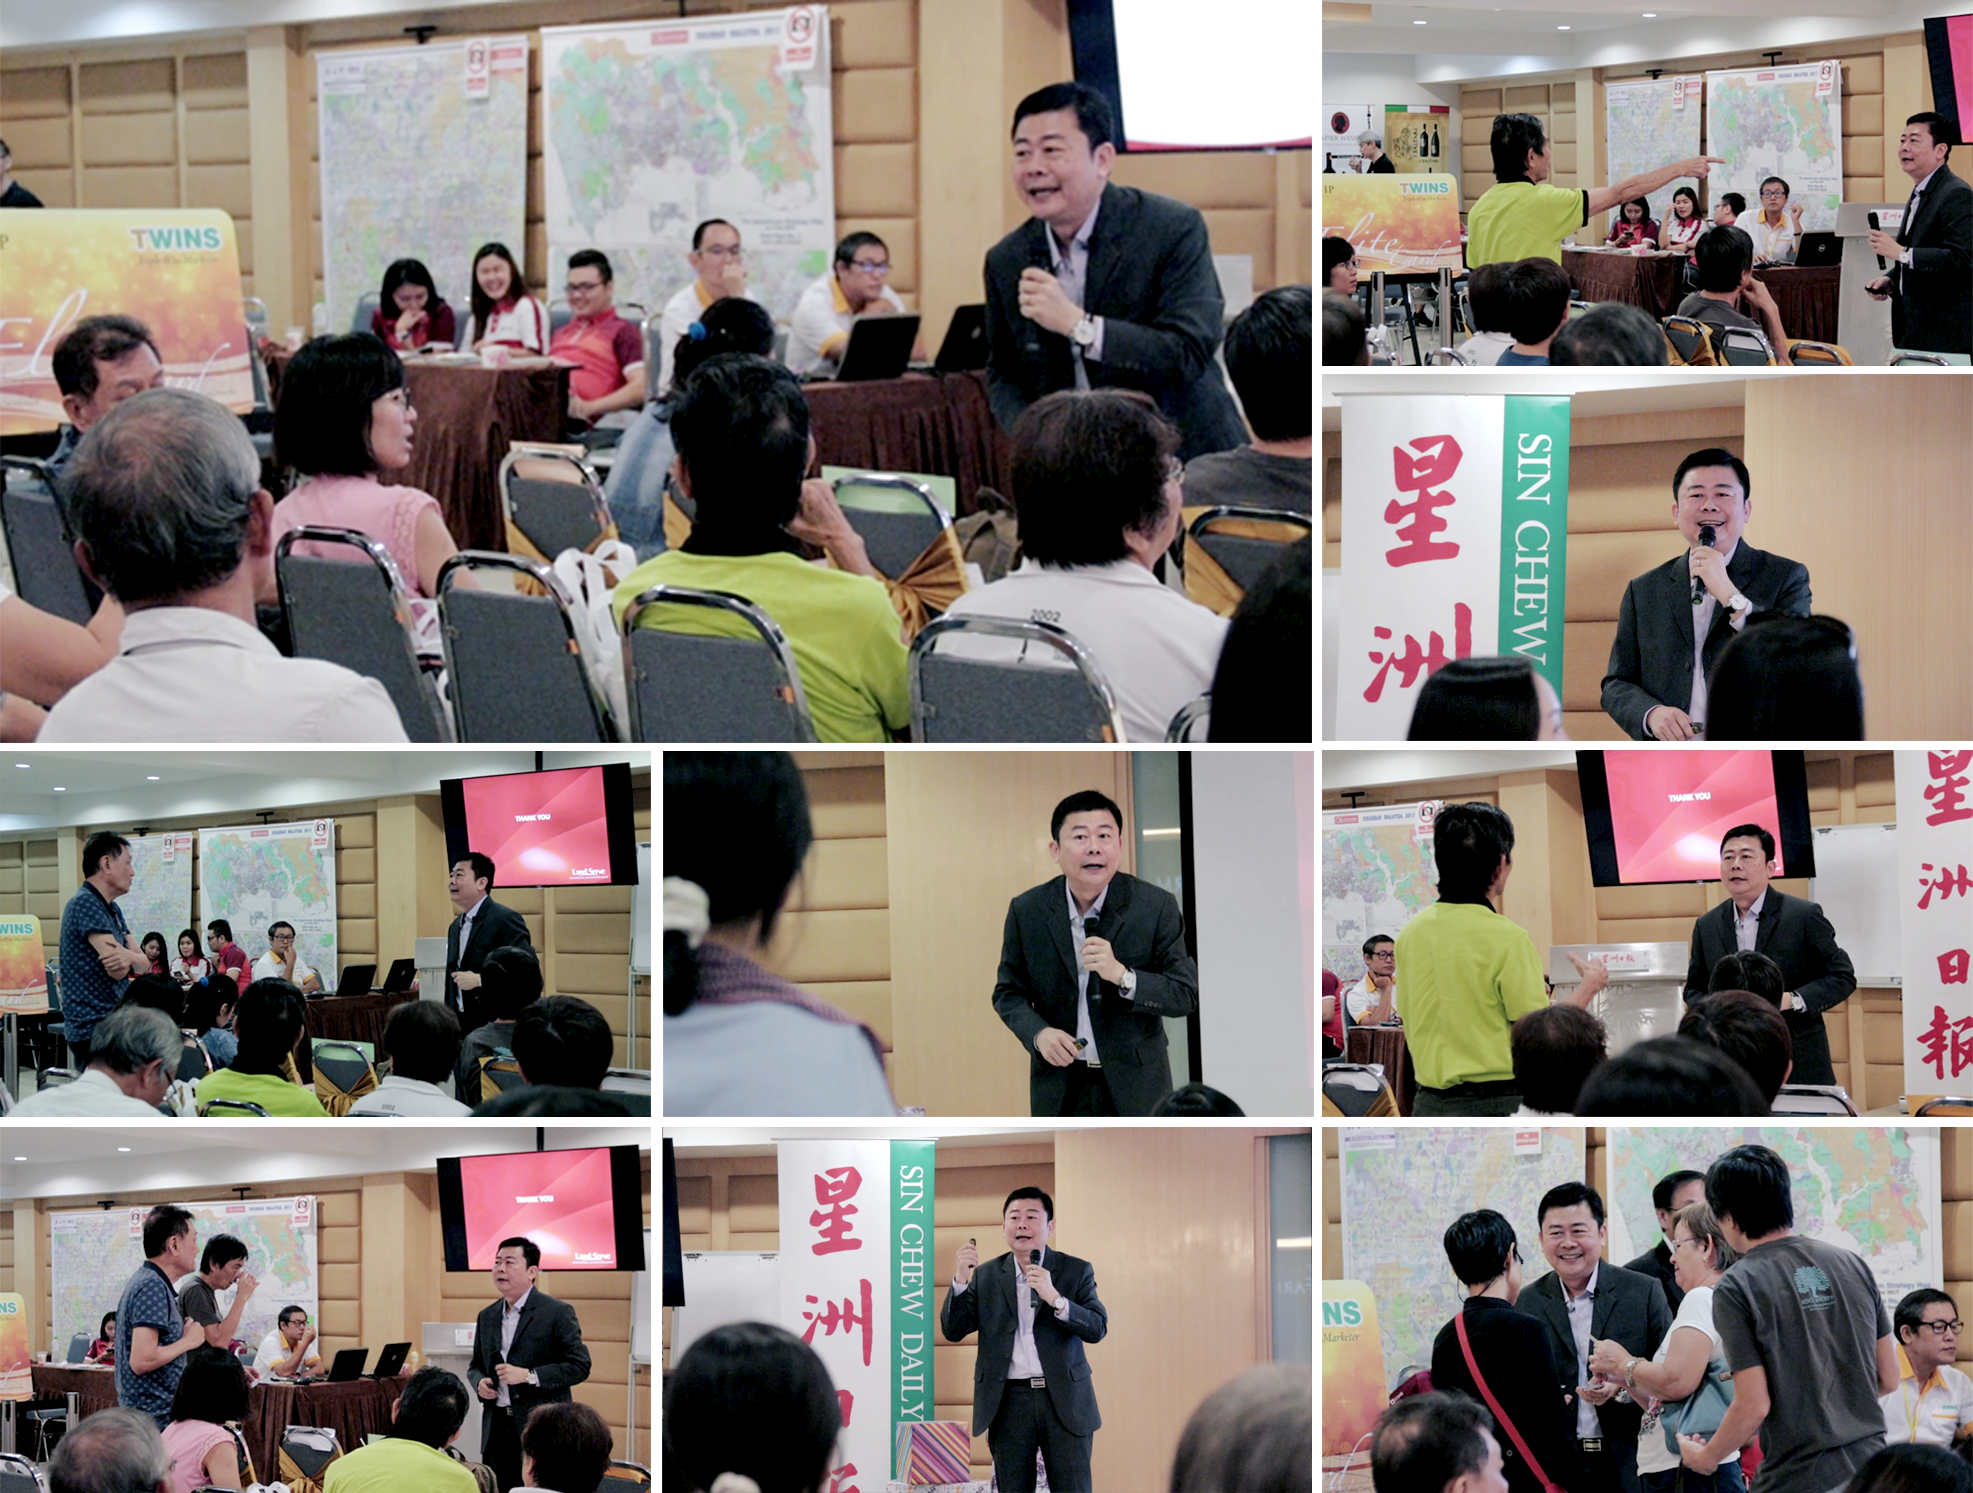 Property Investment & Valuation Insights from LandServe at Sin Chew Twins Property Expo